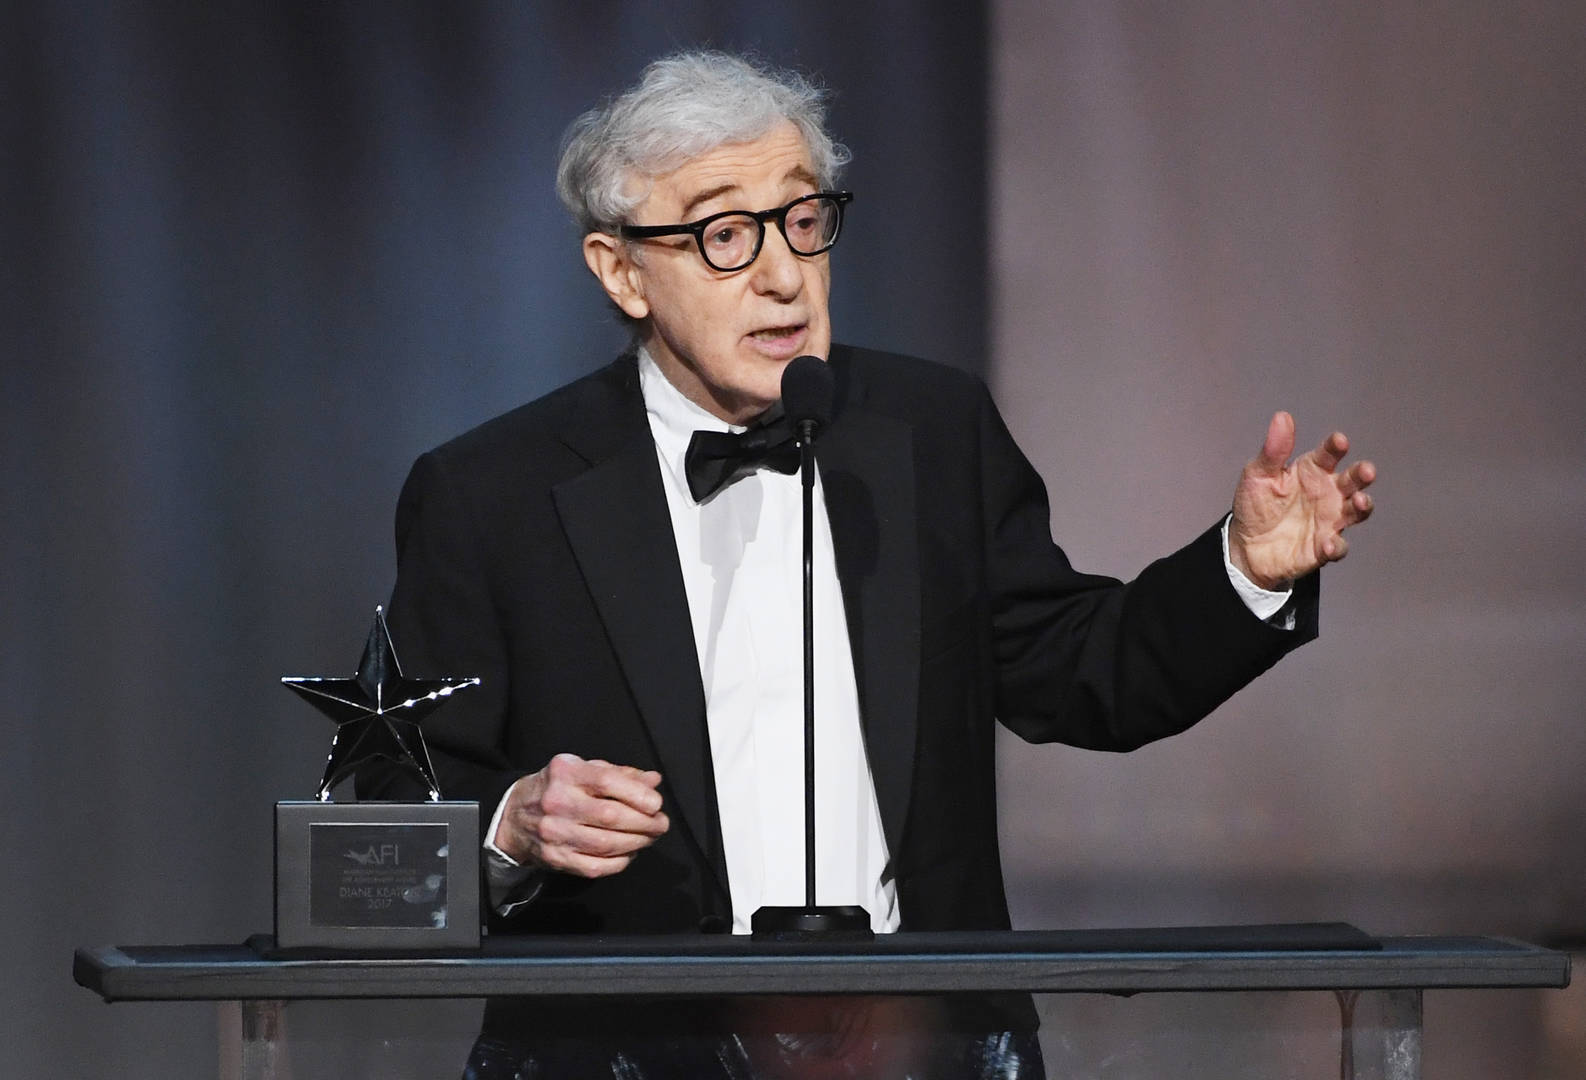 spike lee woody allen cancel culture sexual abuse allegations dylan farrow